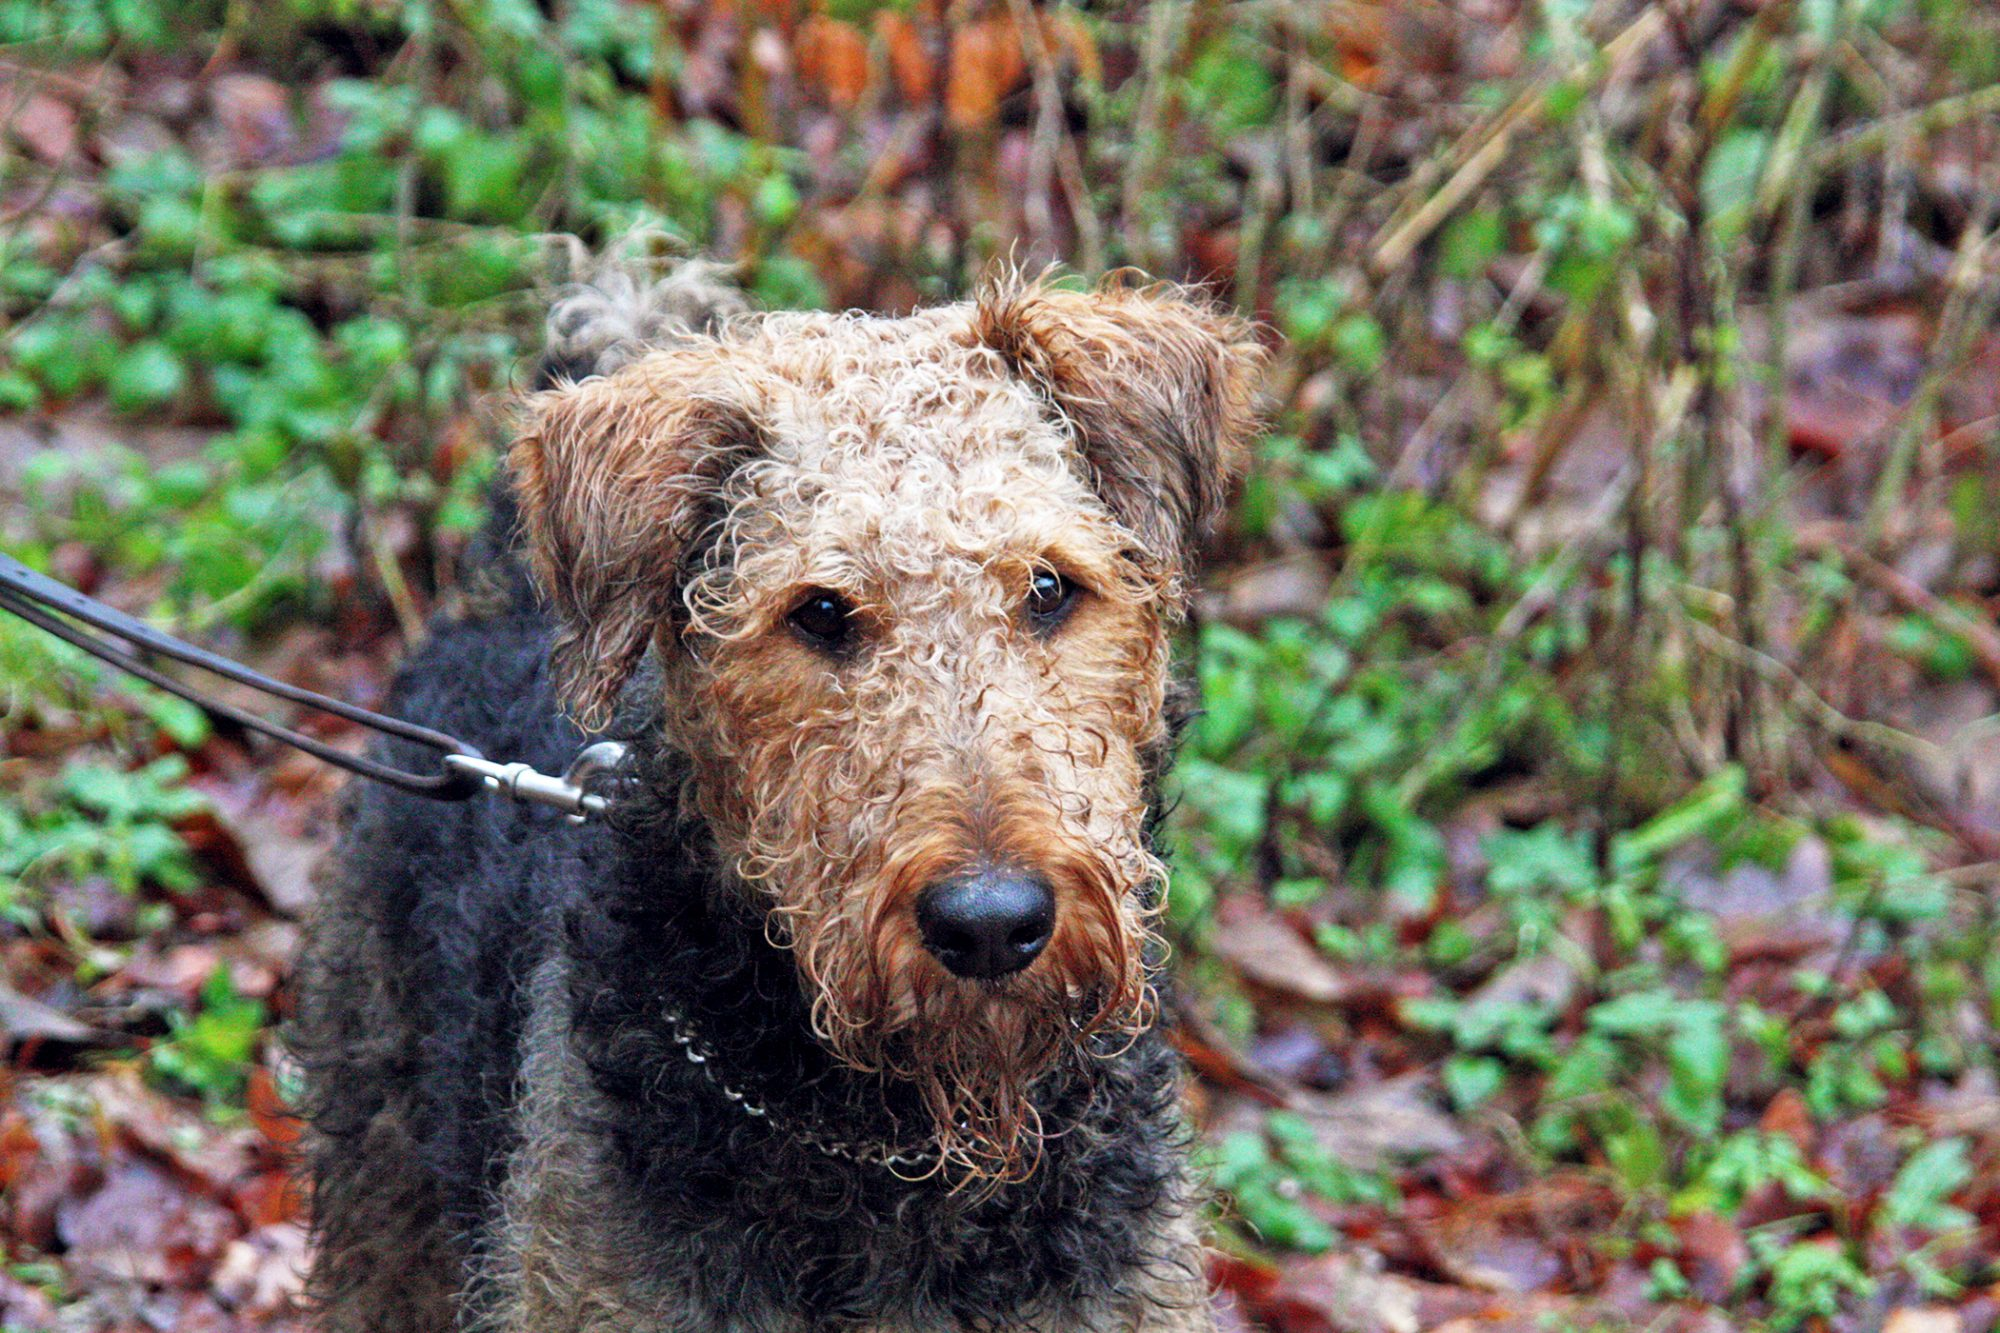 Airedale terrier on a hike in the woods